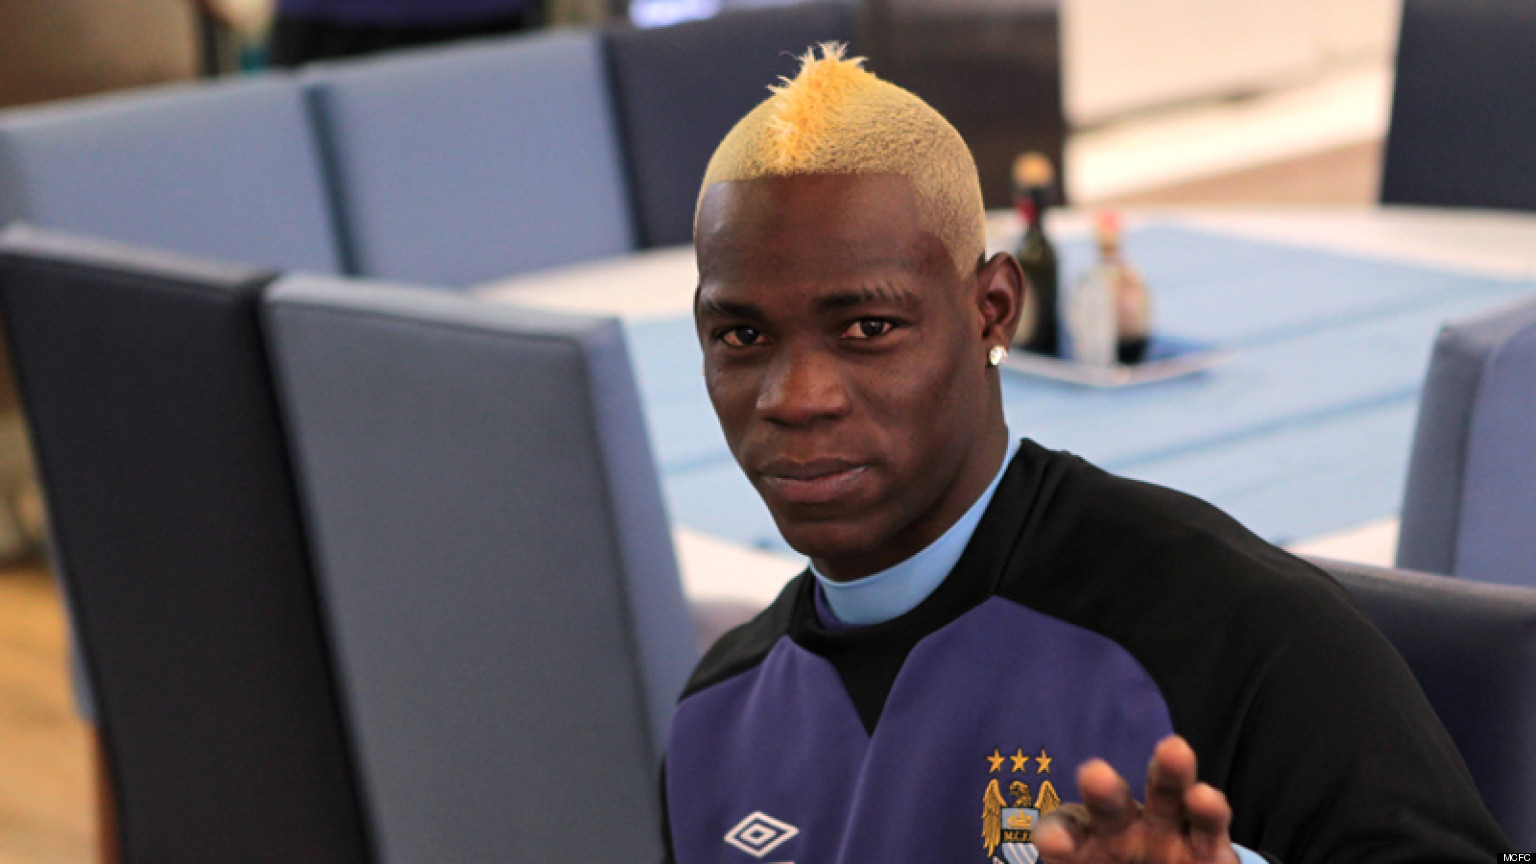 Mario Balotelli And Other Footballers' Hair Disasters